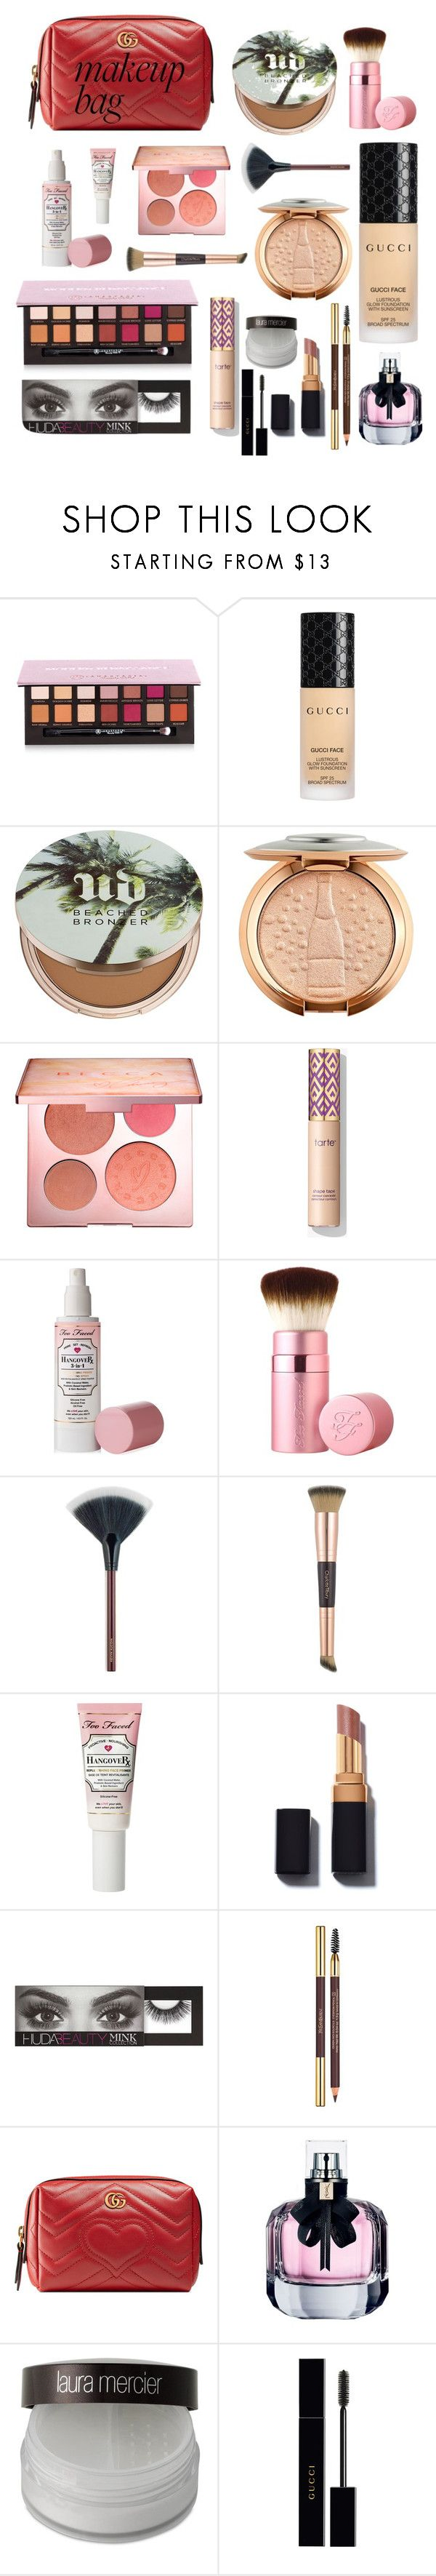 """""""MAKEUP BAG💕"""" by naliasako ❤ liked on Polyvore featuring beauty, Anastasia Beverly Hills, Gucci, Urban Decay, Sephora Collection, Too Faced Cosmetics, Charlotte Tilbury, Huda Beauty, Yves Saint Laurent and Laura Mercier"""